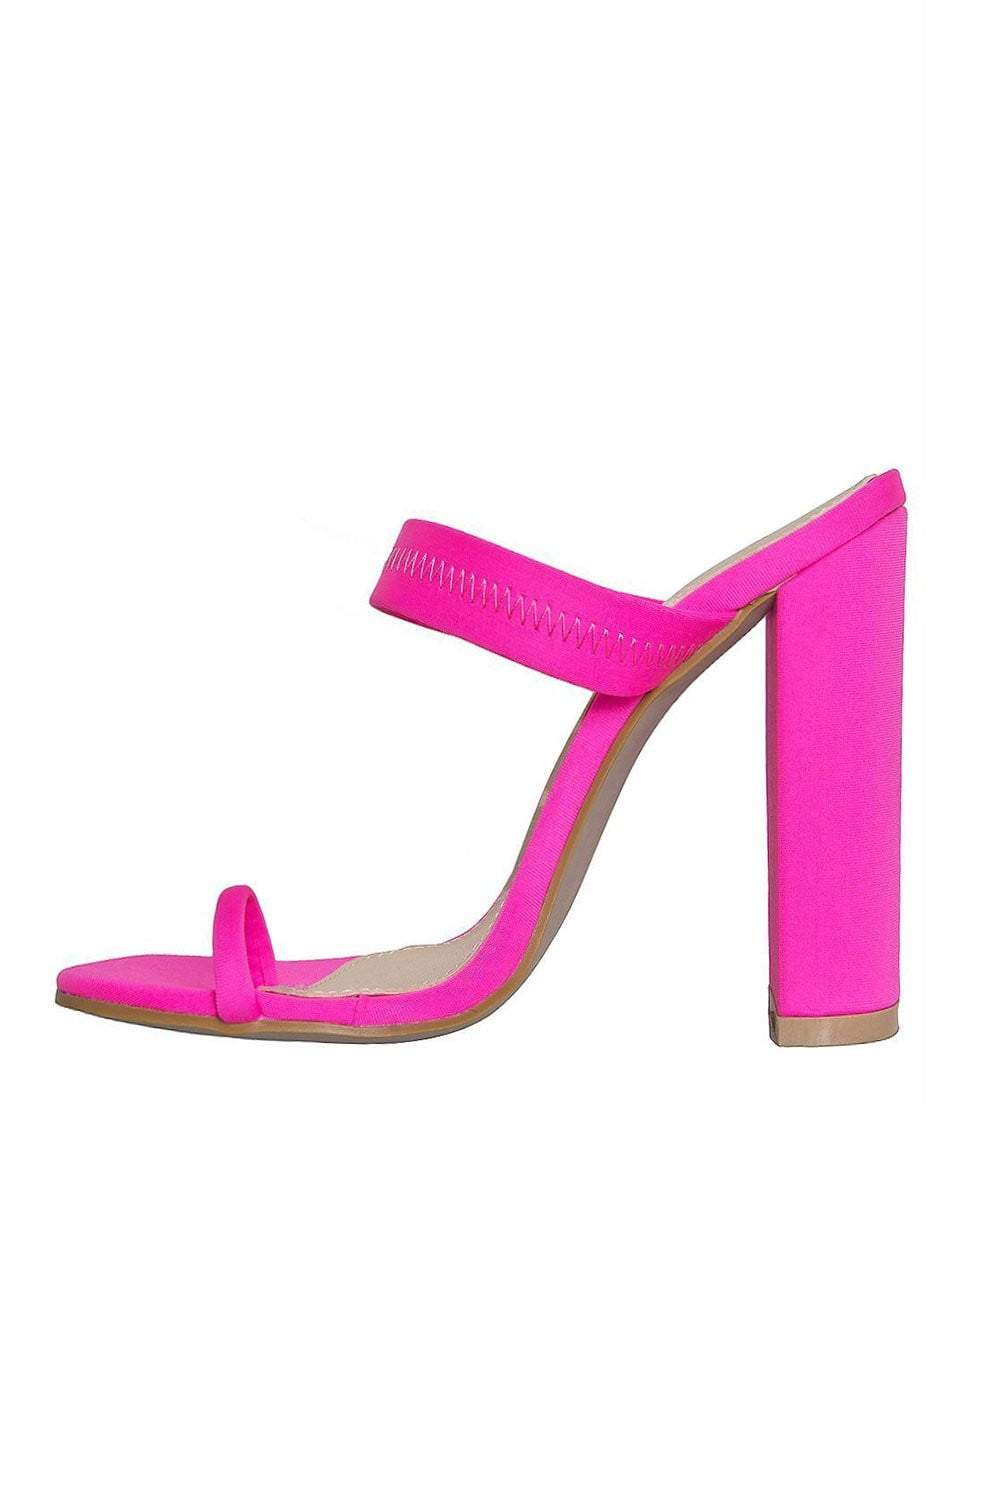 Neon Pink Toe Loop High Heeled Mules (2335397183547)